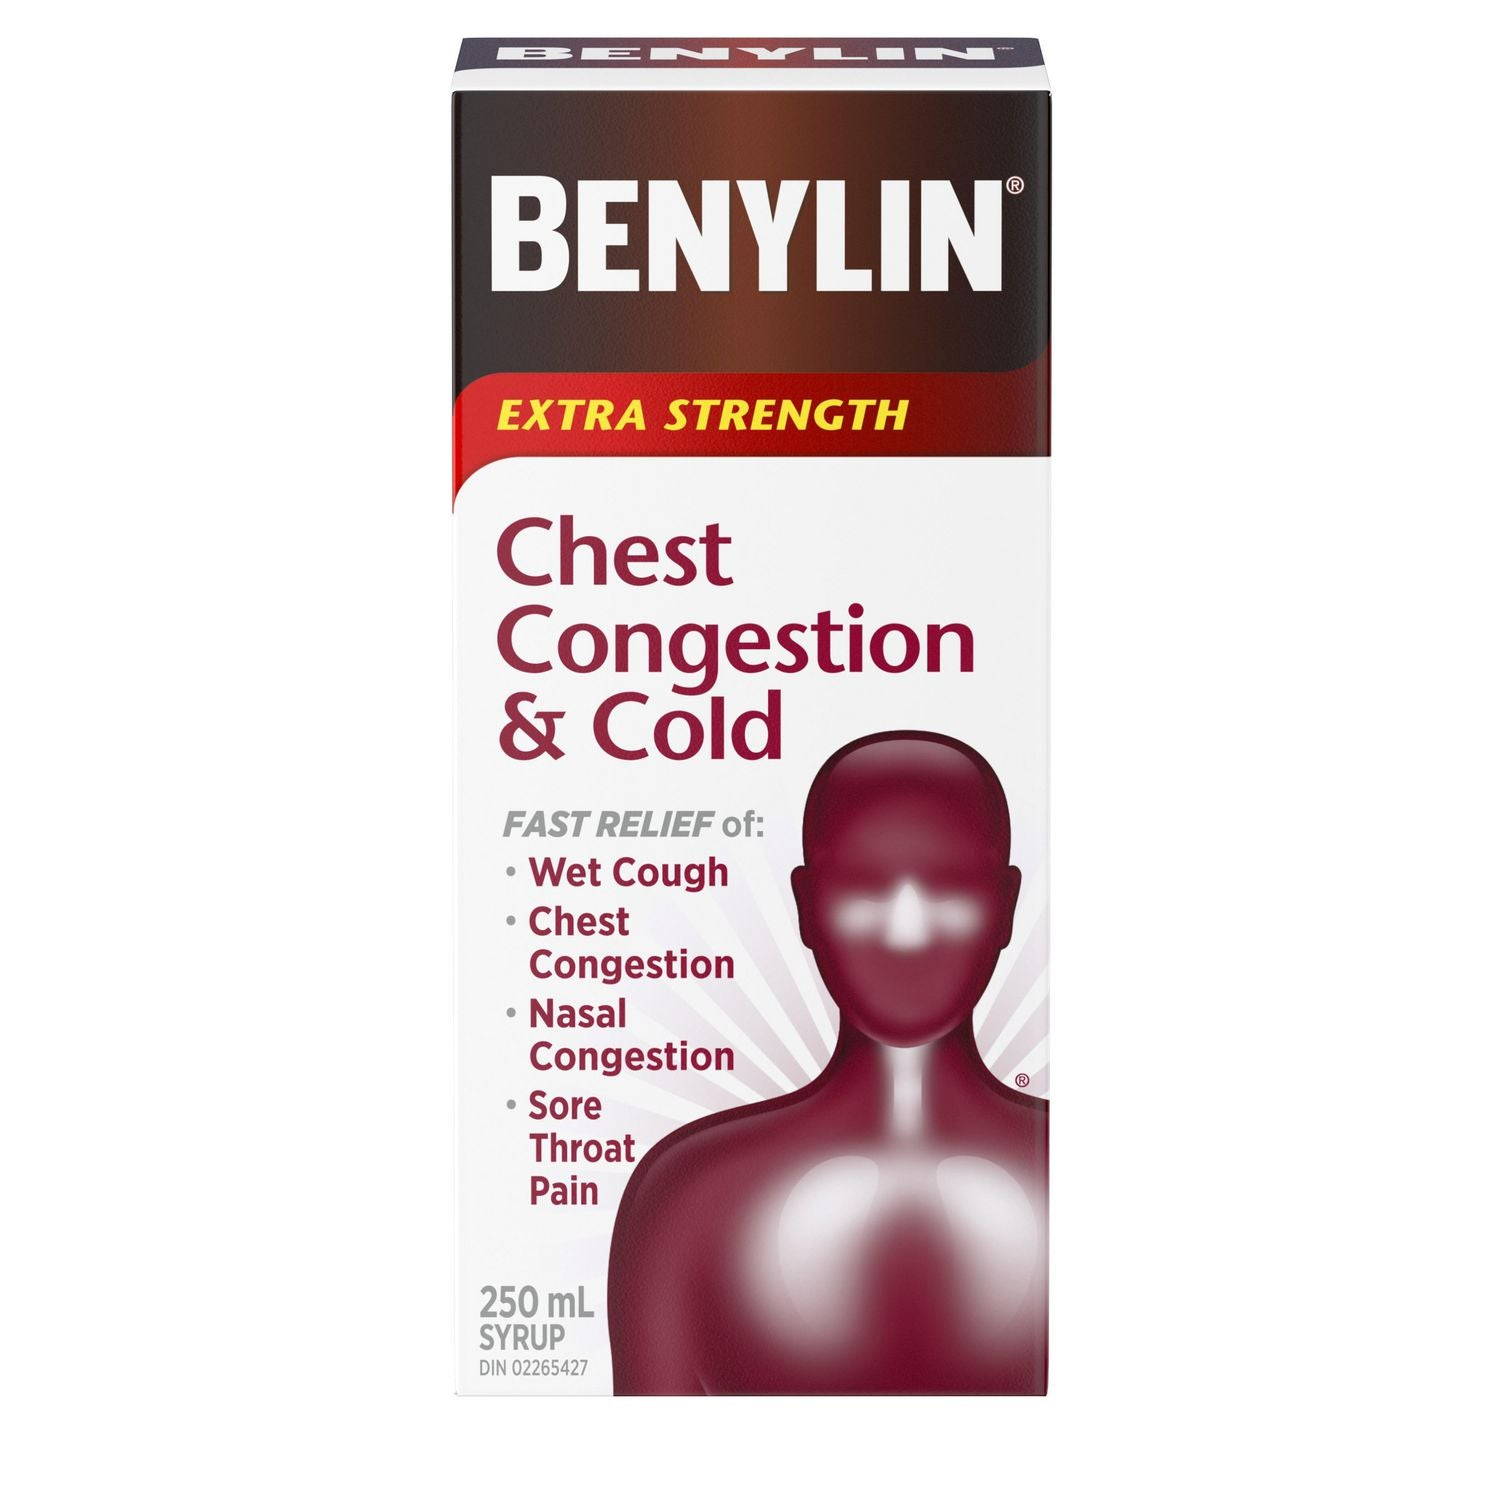 Benylin Chest Congestion & Cold Extra Strength 250mL